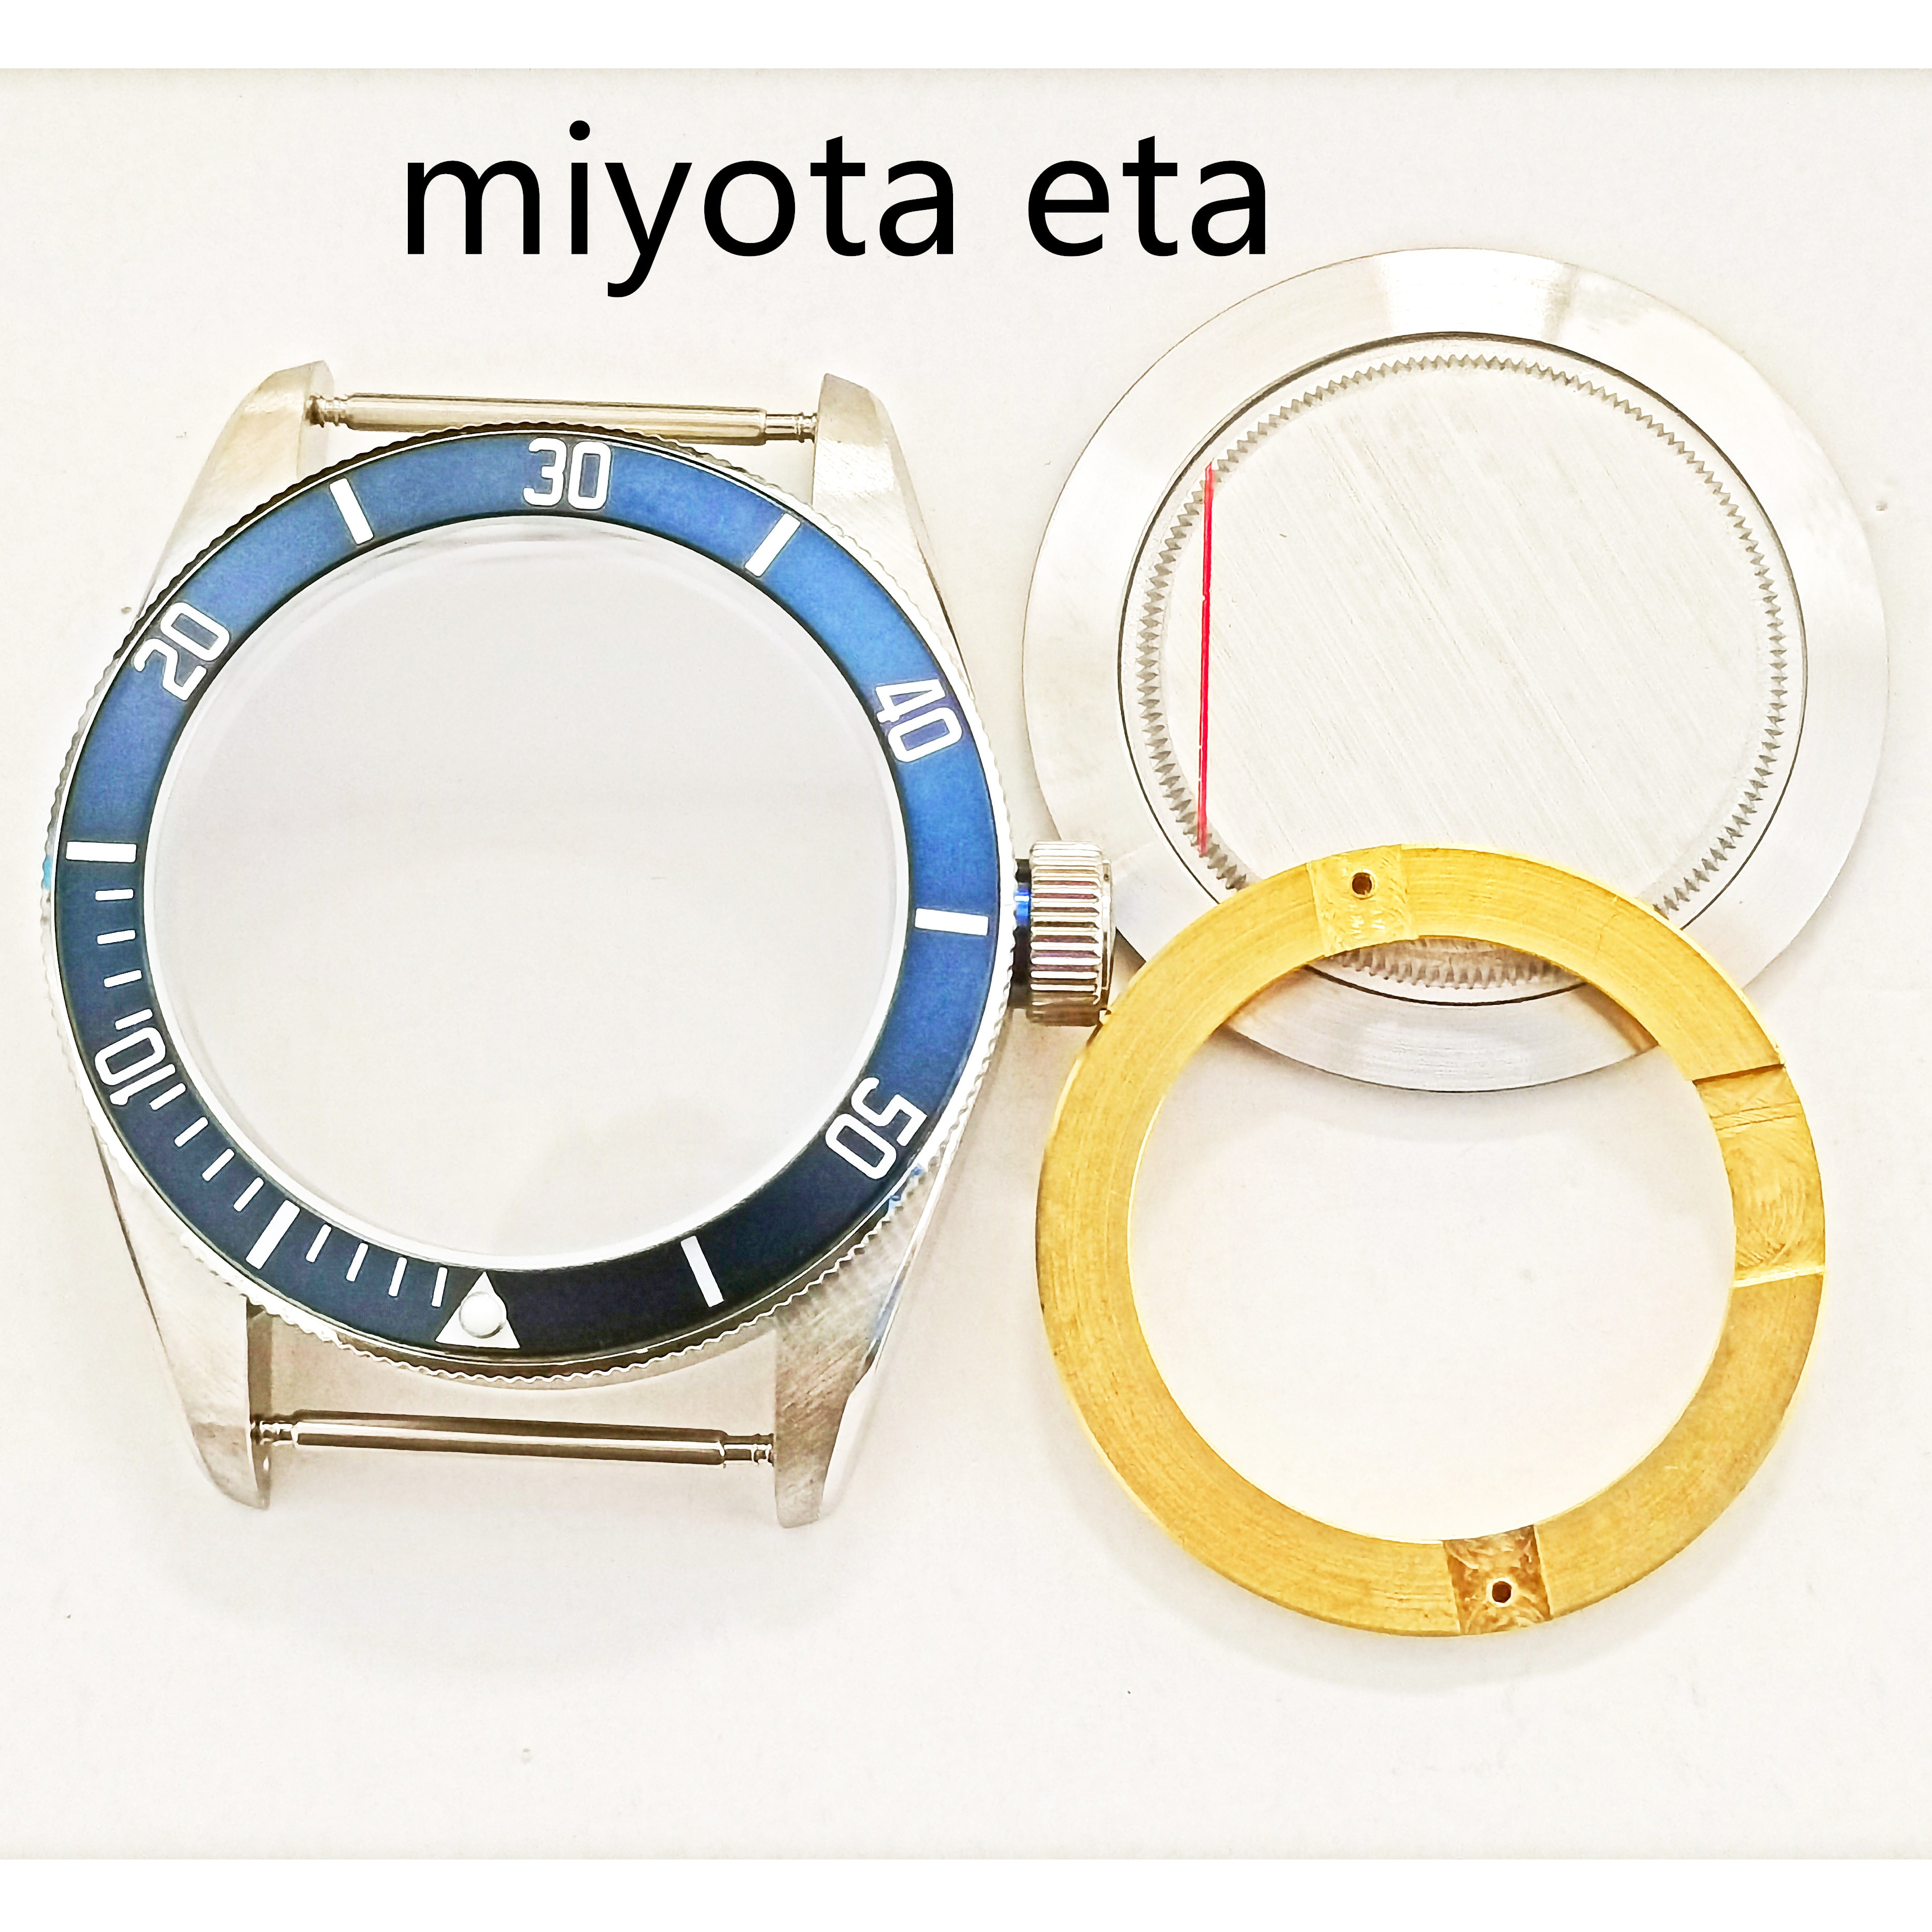 40MM  Man's Watch Part 316 Stainless Steel Case 30MM Dial And Hands Fit ETA 2836/2892 ST2130 Miyota8205 8215 Automatic Movement enlarge